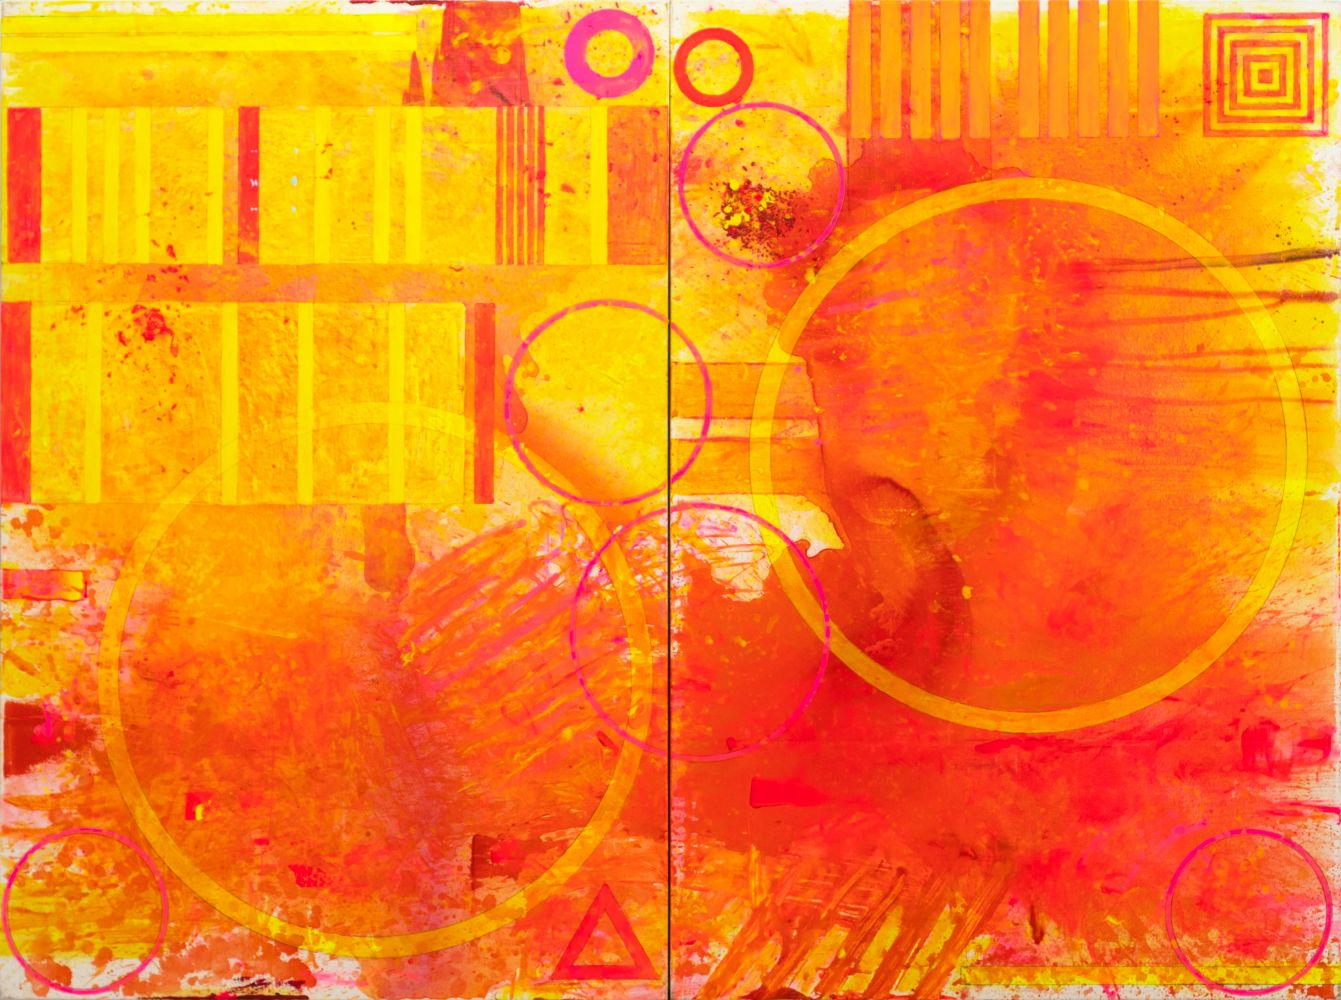 J. Steven Manolis,  Biscayne Bay (Sunrise), 2020, Acrylic on canvas, 2 panels-72x96 inches, for sale